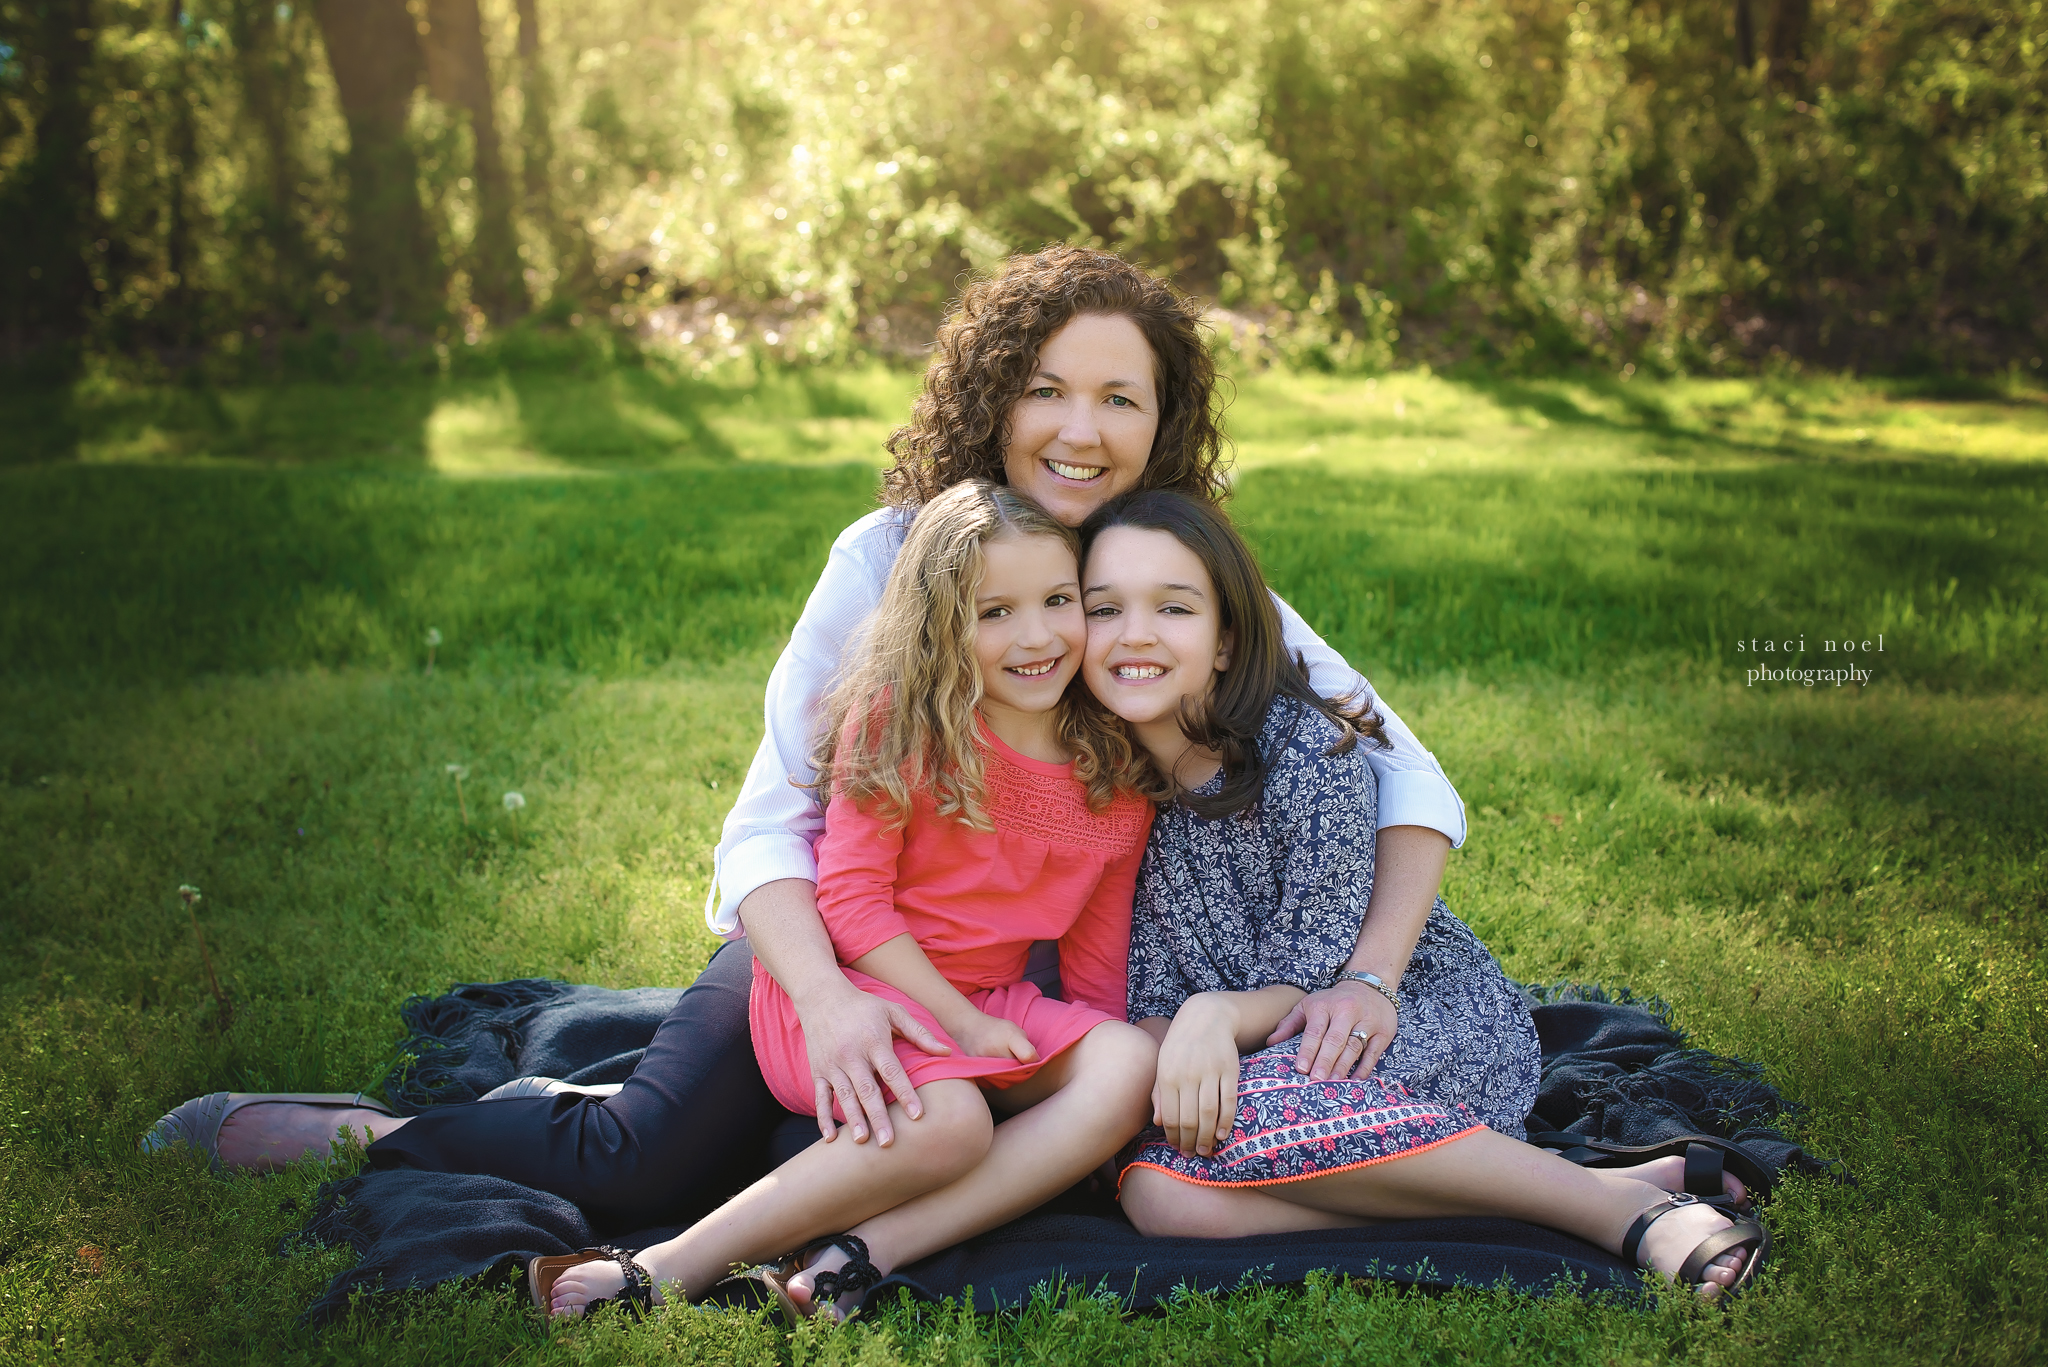 charlotte's best family photographer staci noel photographer captures family images iof mother and daughters in park setting outdoors in natural light